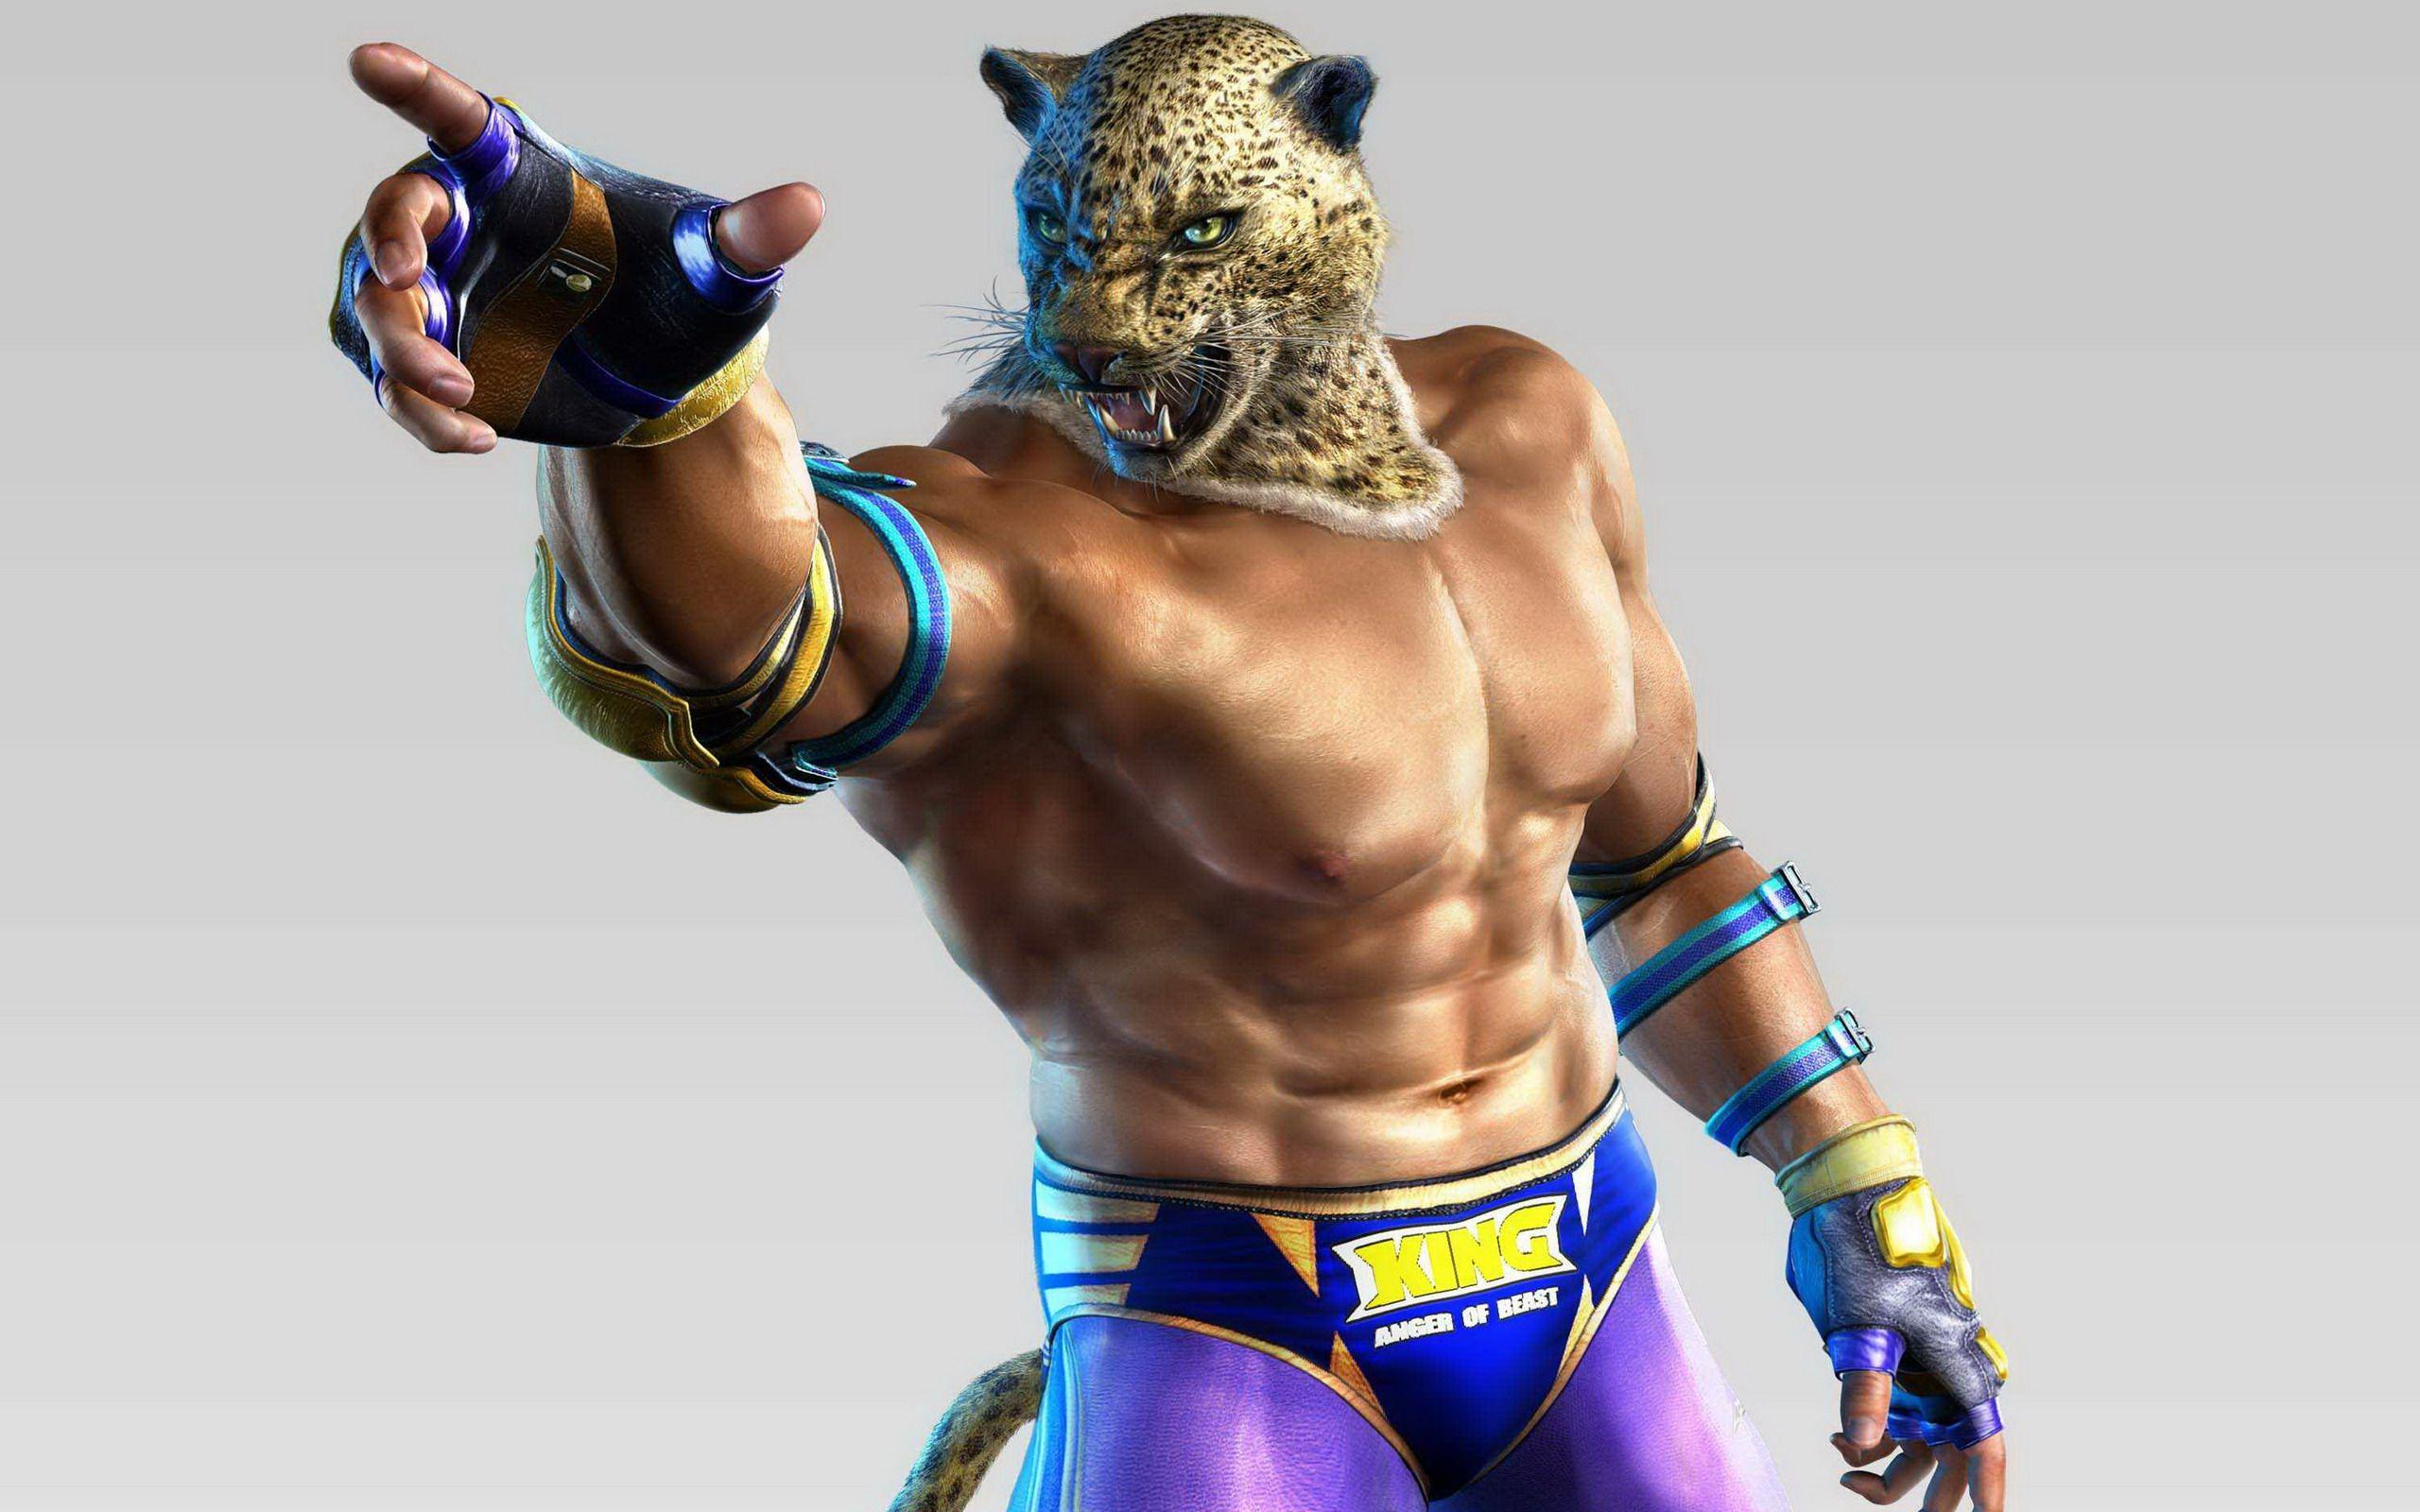 tekken king wallpaper hd